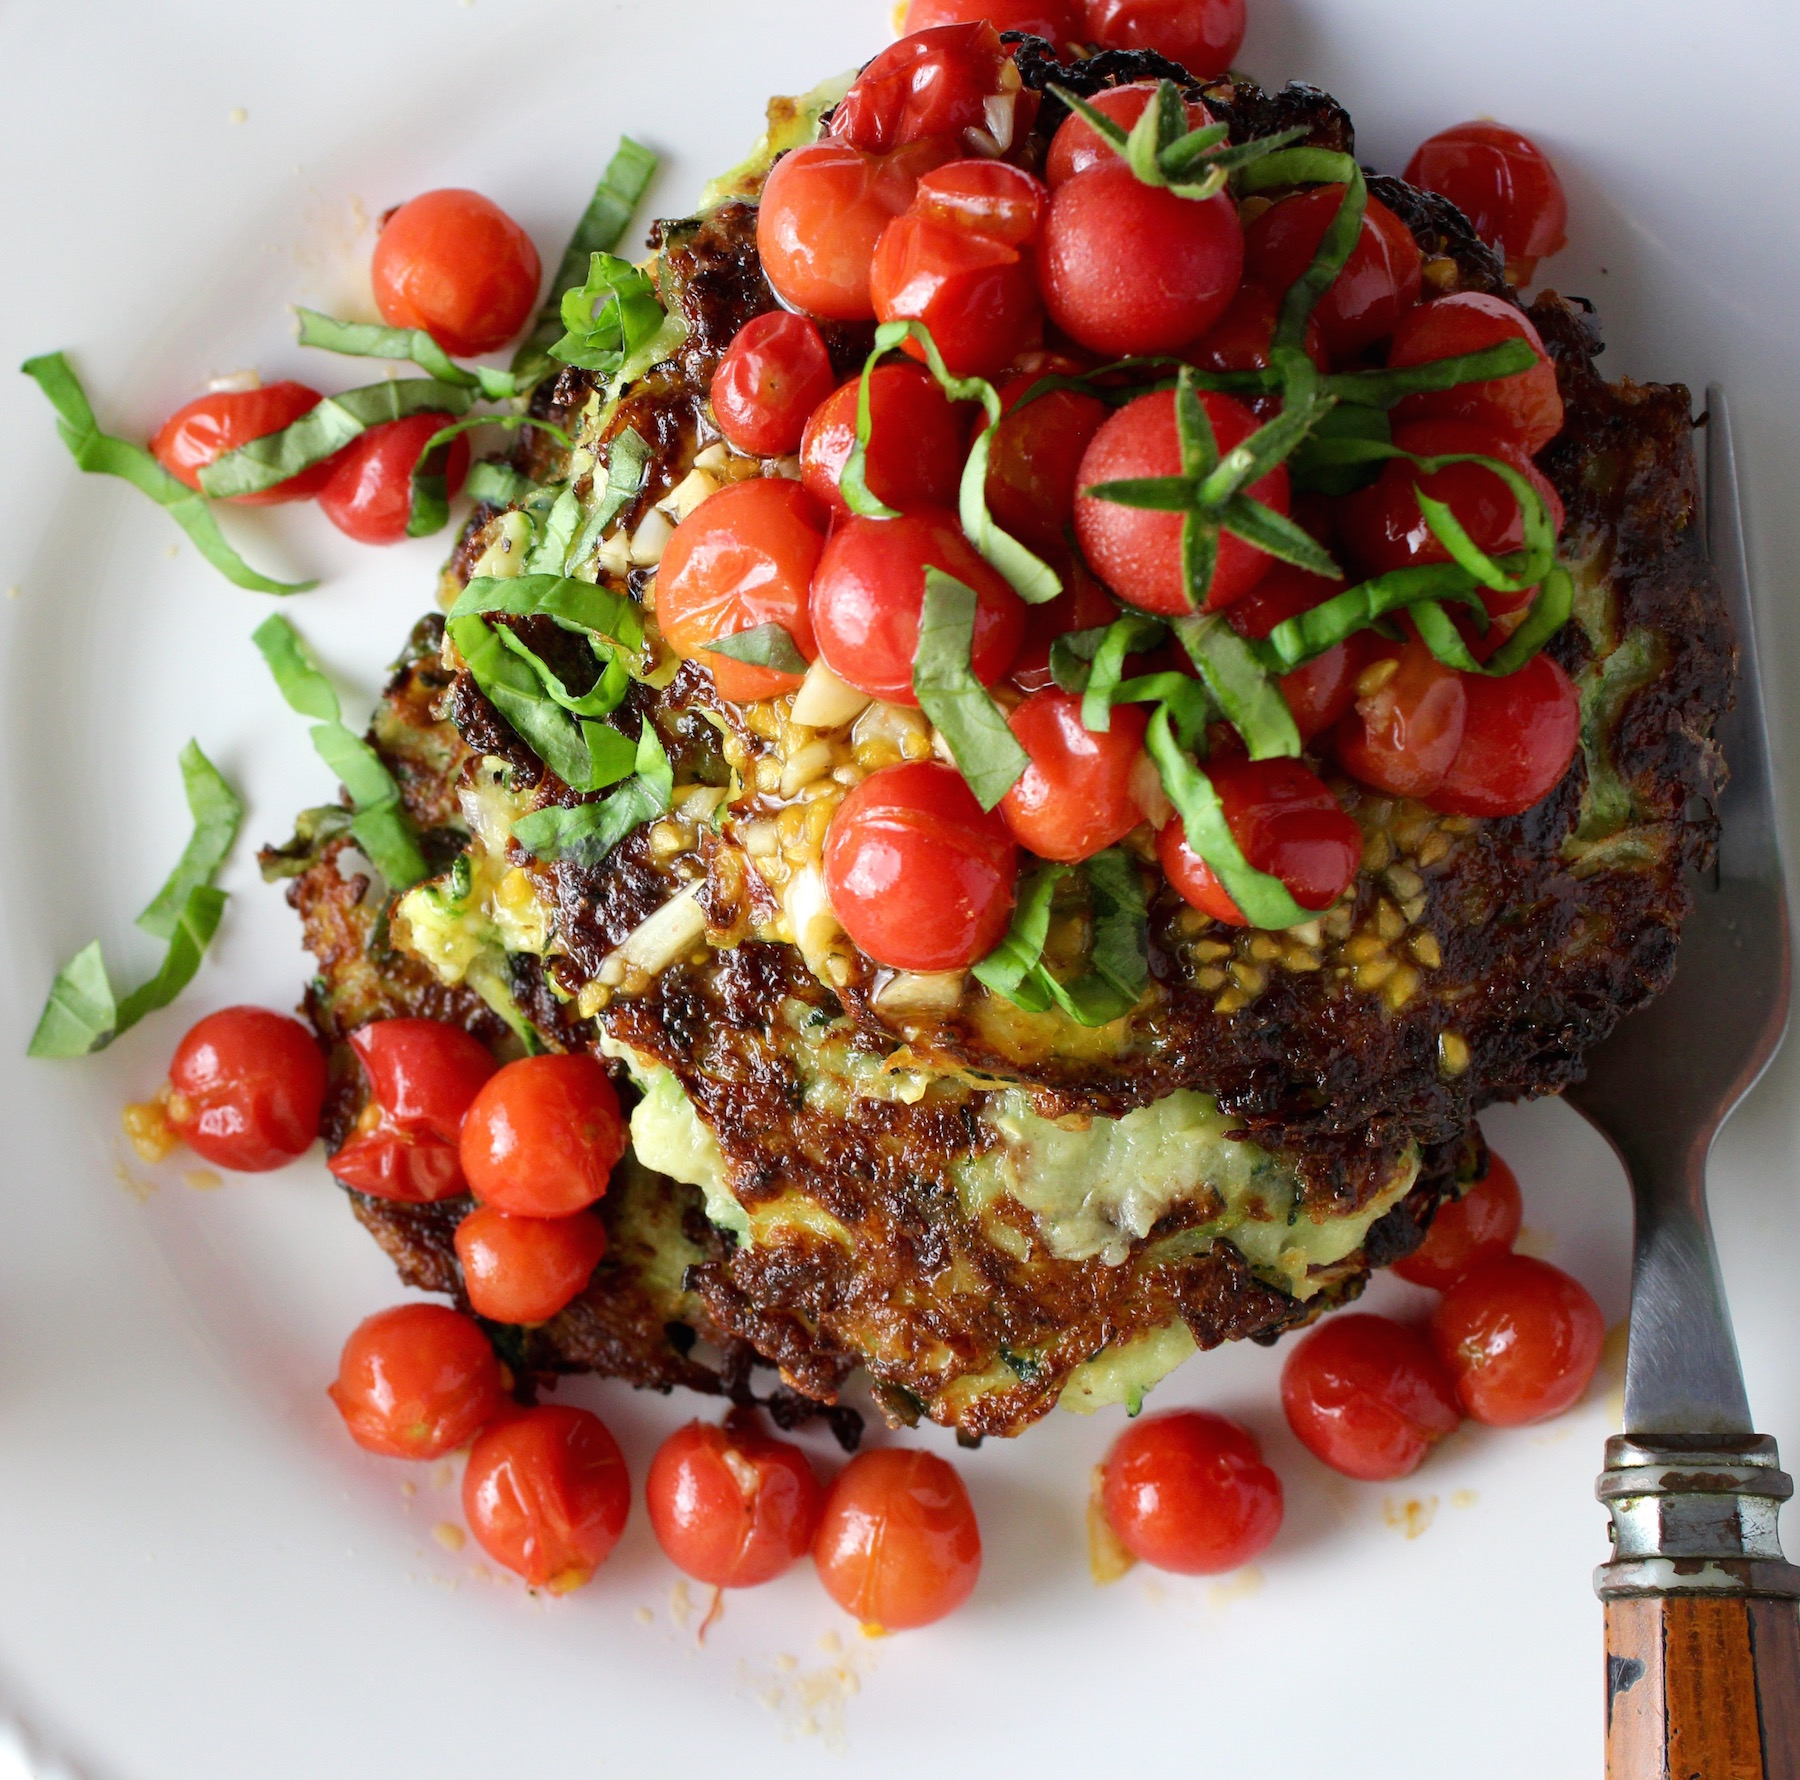 Zucchini Fritters with Tomatoes and Basil